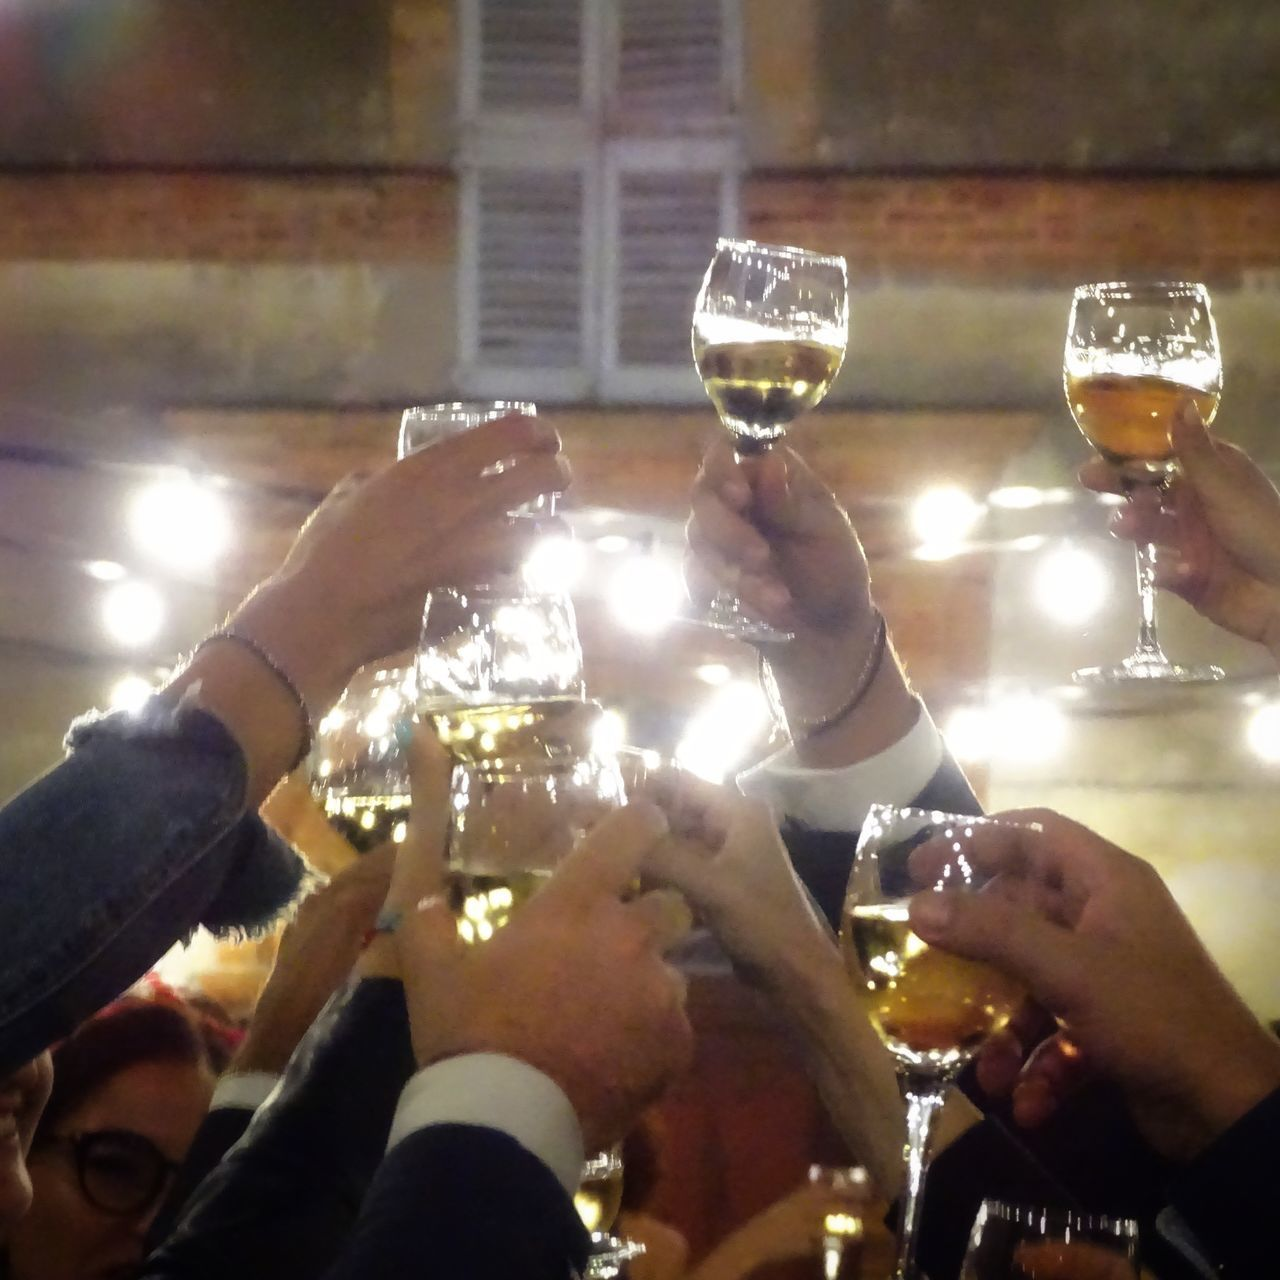 GROUP OF PEOPLE IN DRINKING GLASS AGAINST THE BACKGROUND